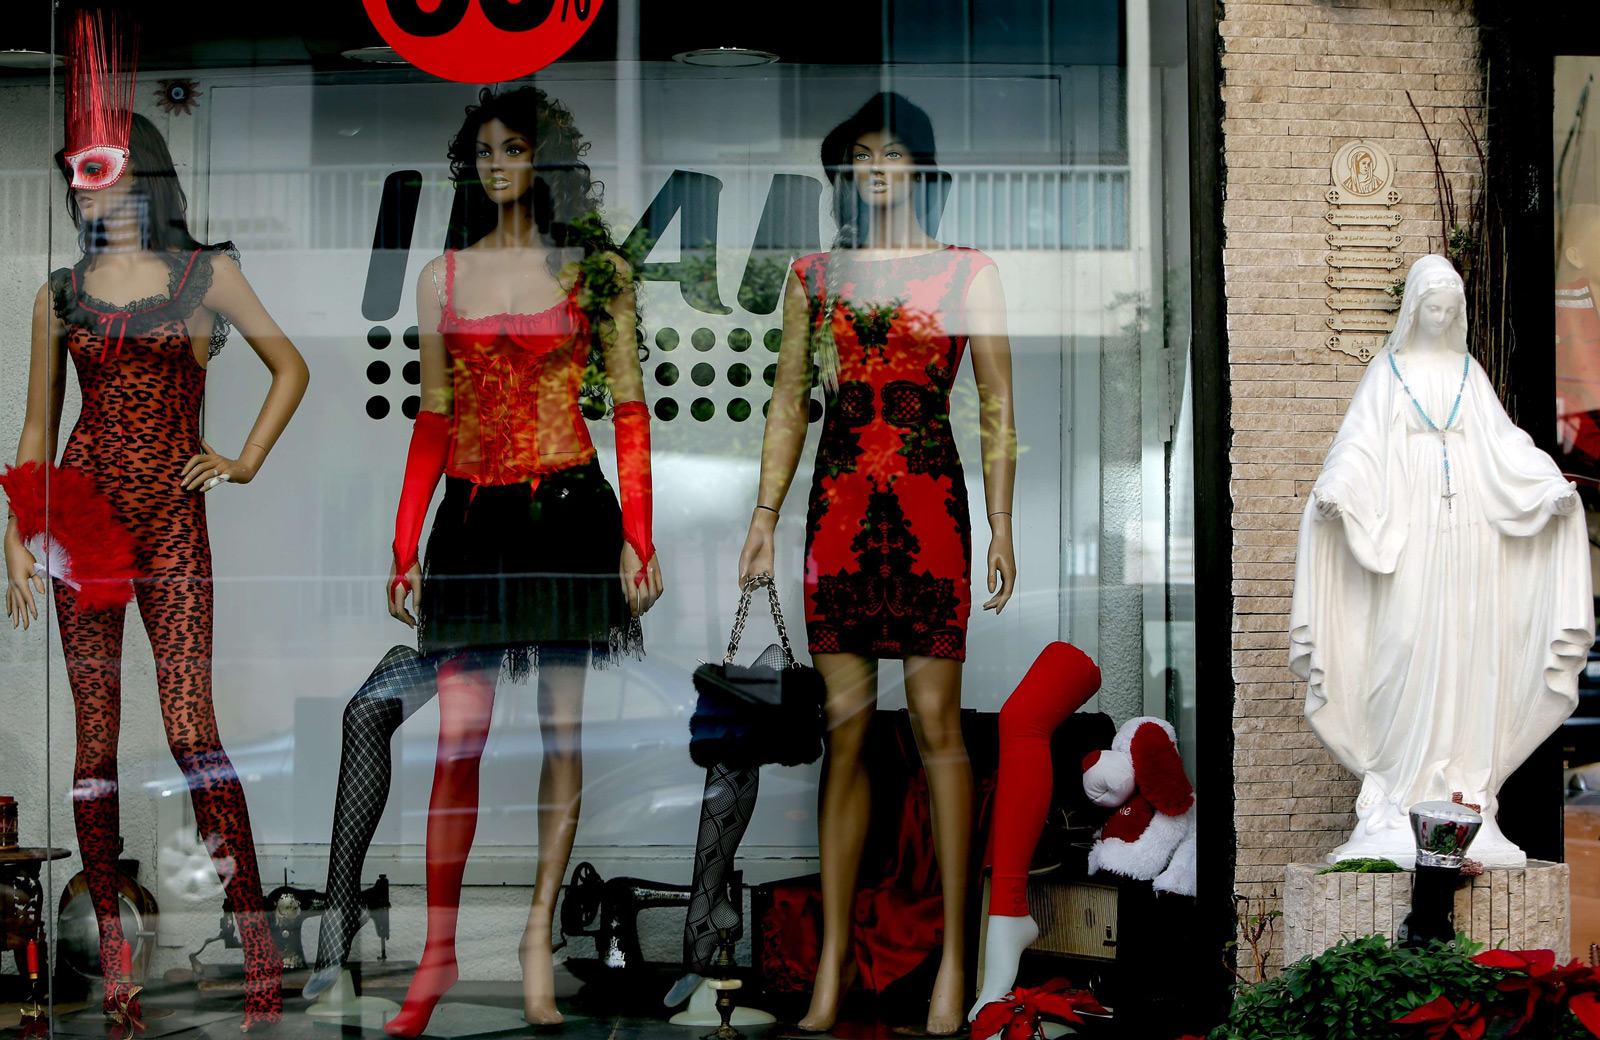 In this window display, we can see some erotic costumes or even street clothes to wear on Valentine's day.